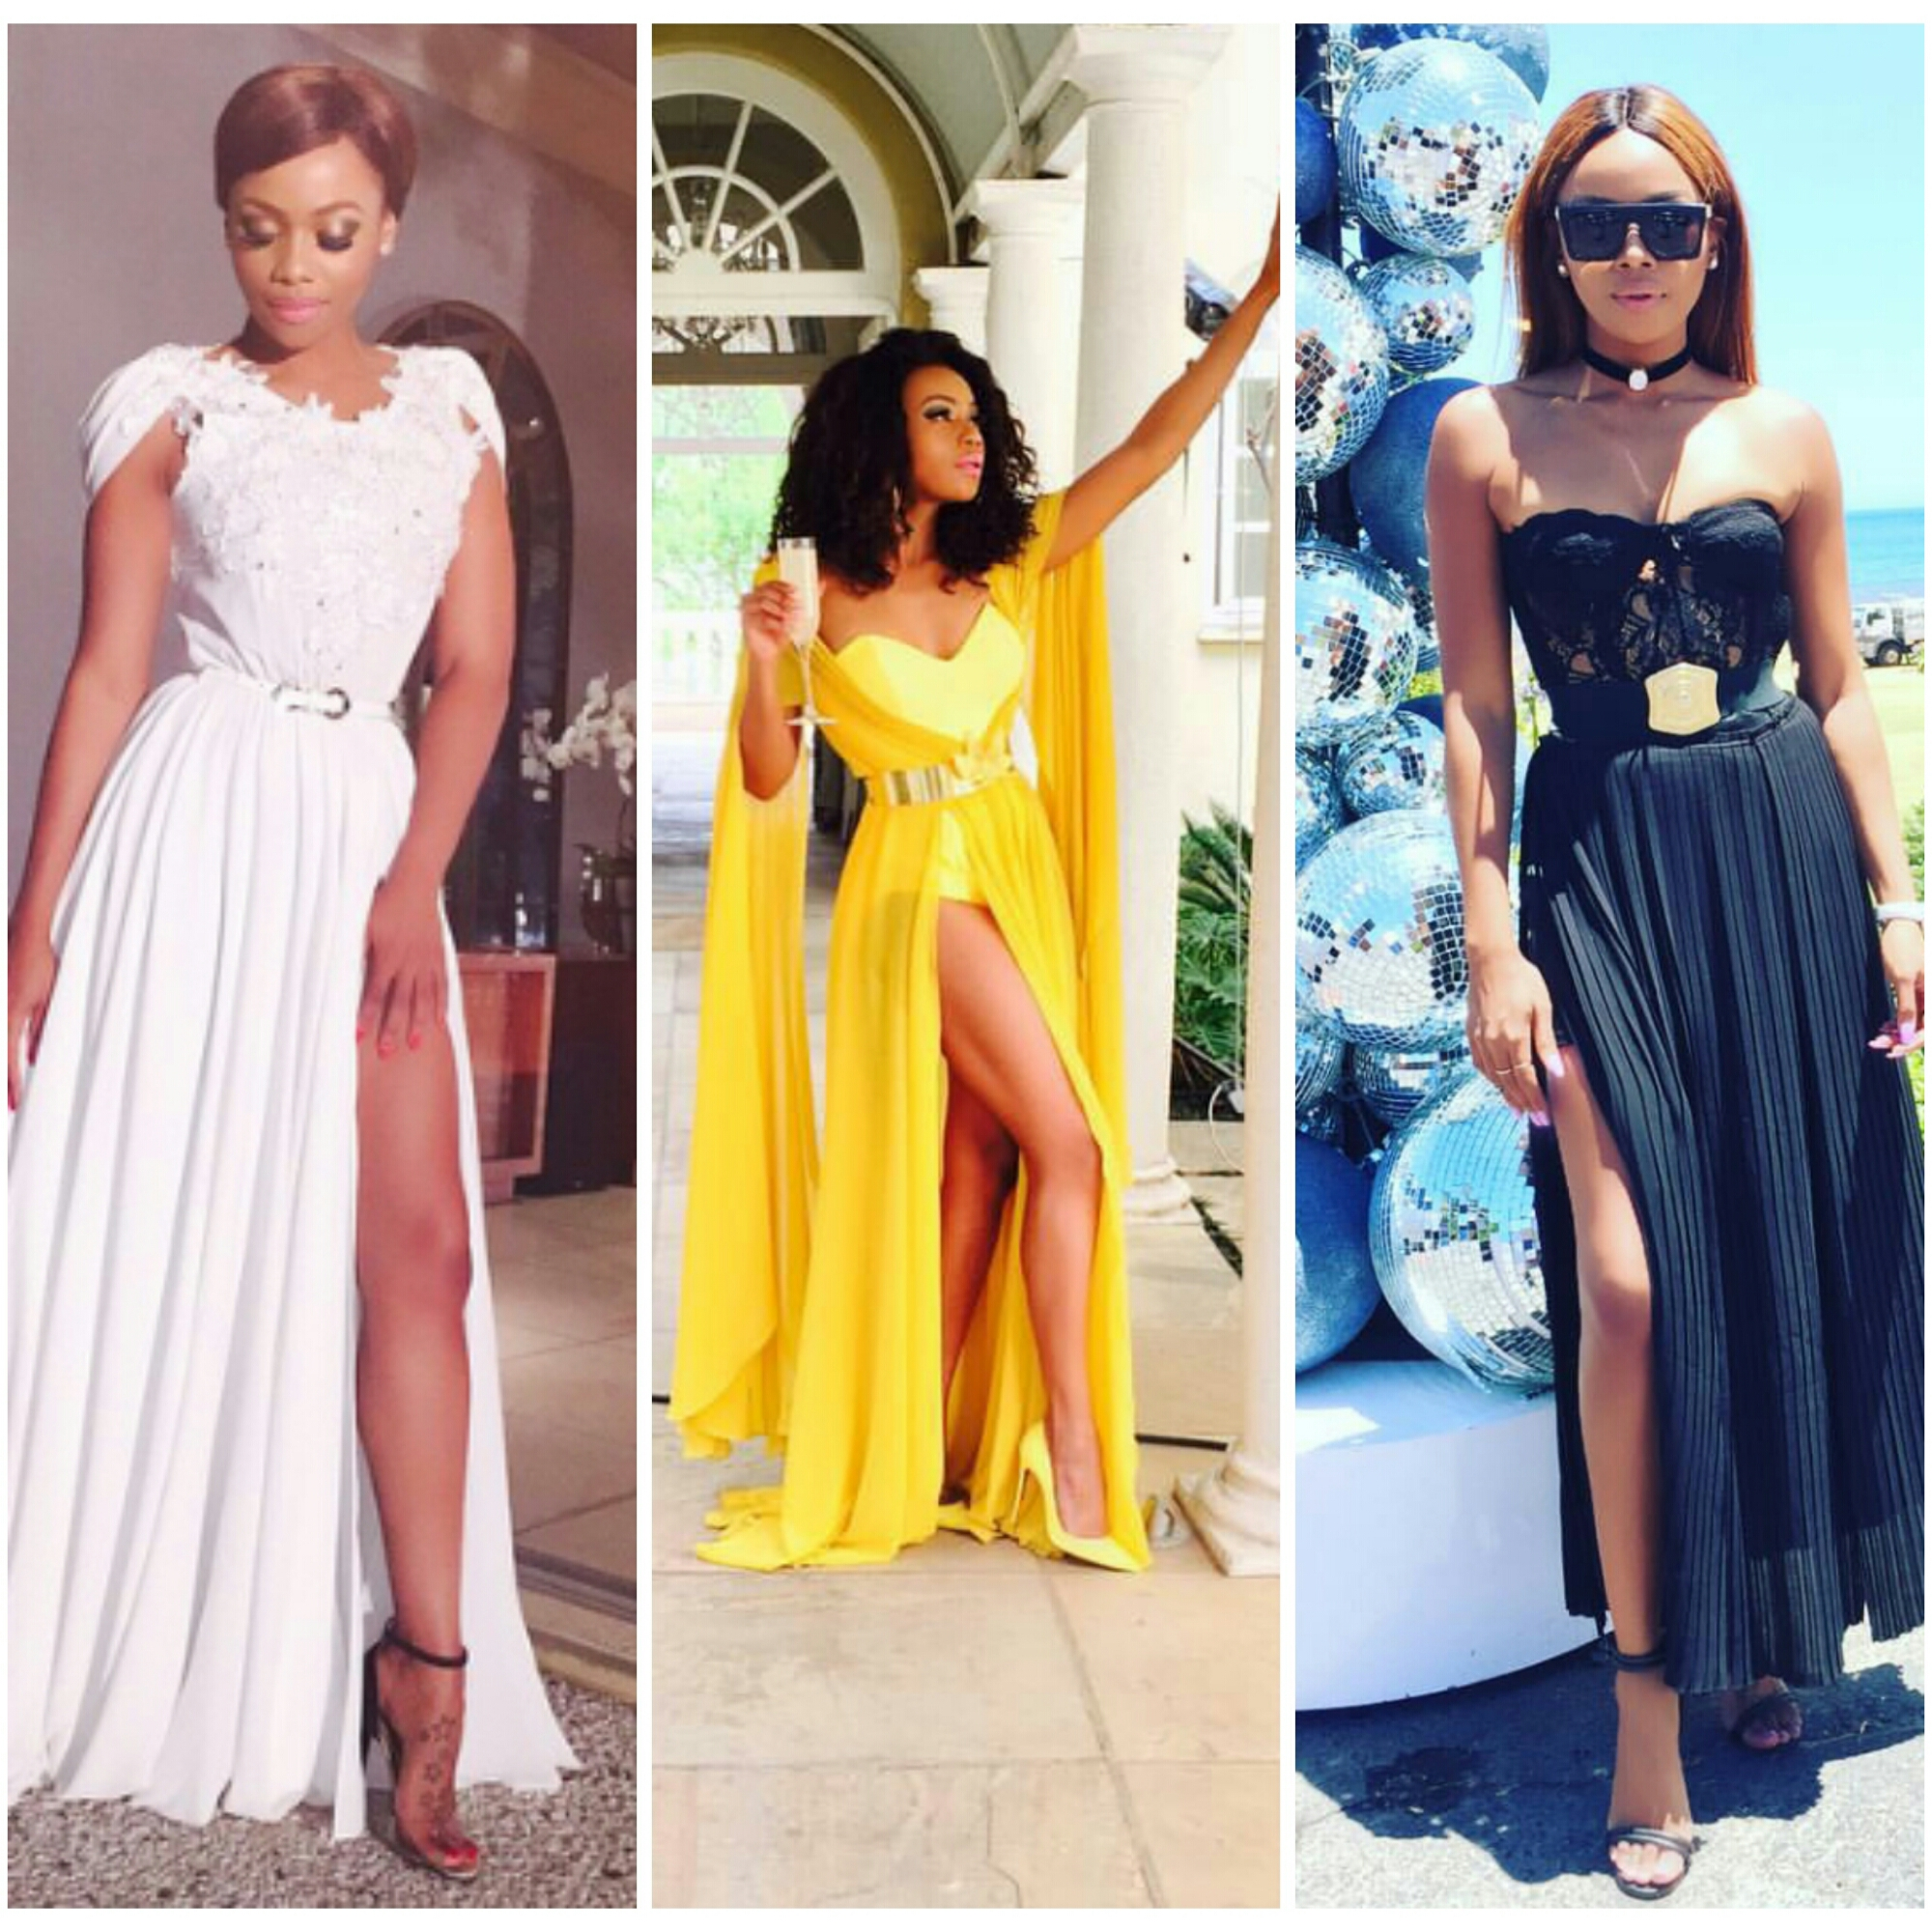 The Countless Times Bonang Matheba Dazzled In Thigh High Slit Dresses